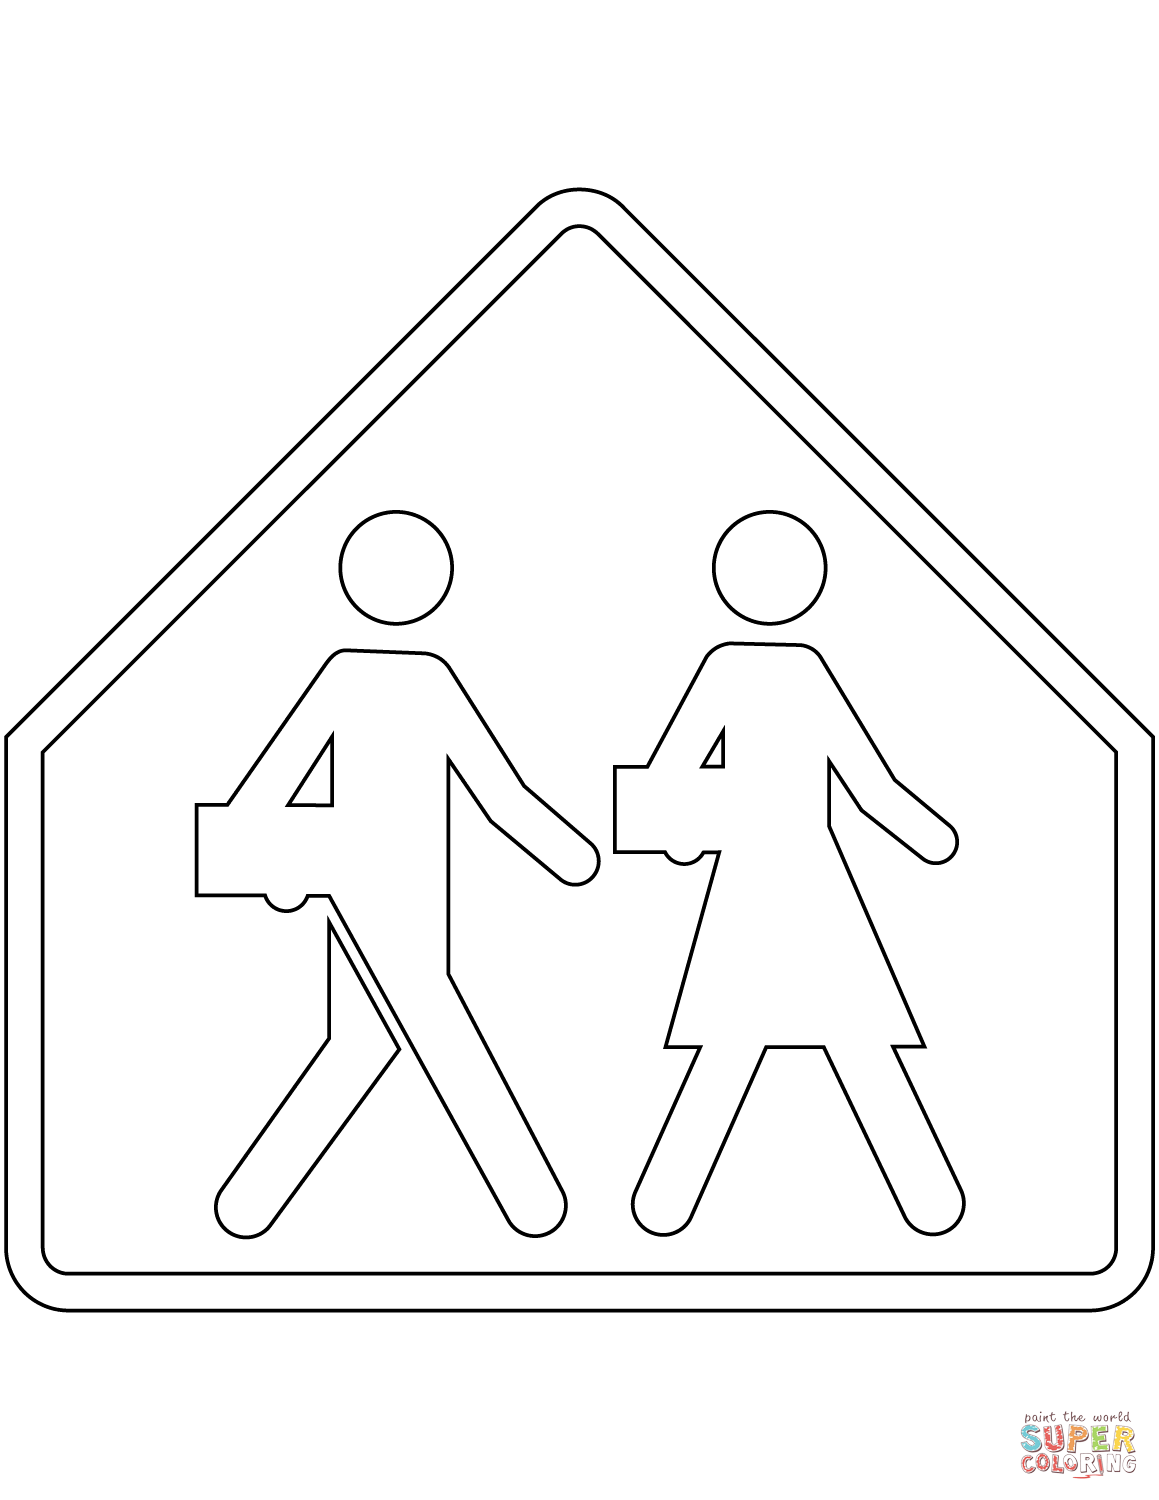 School Crossing Sign In Quebec Coloring Page Free Printable